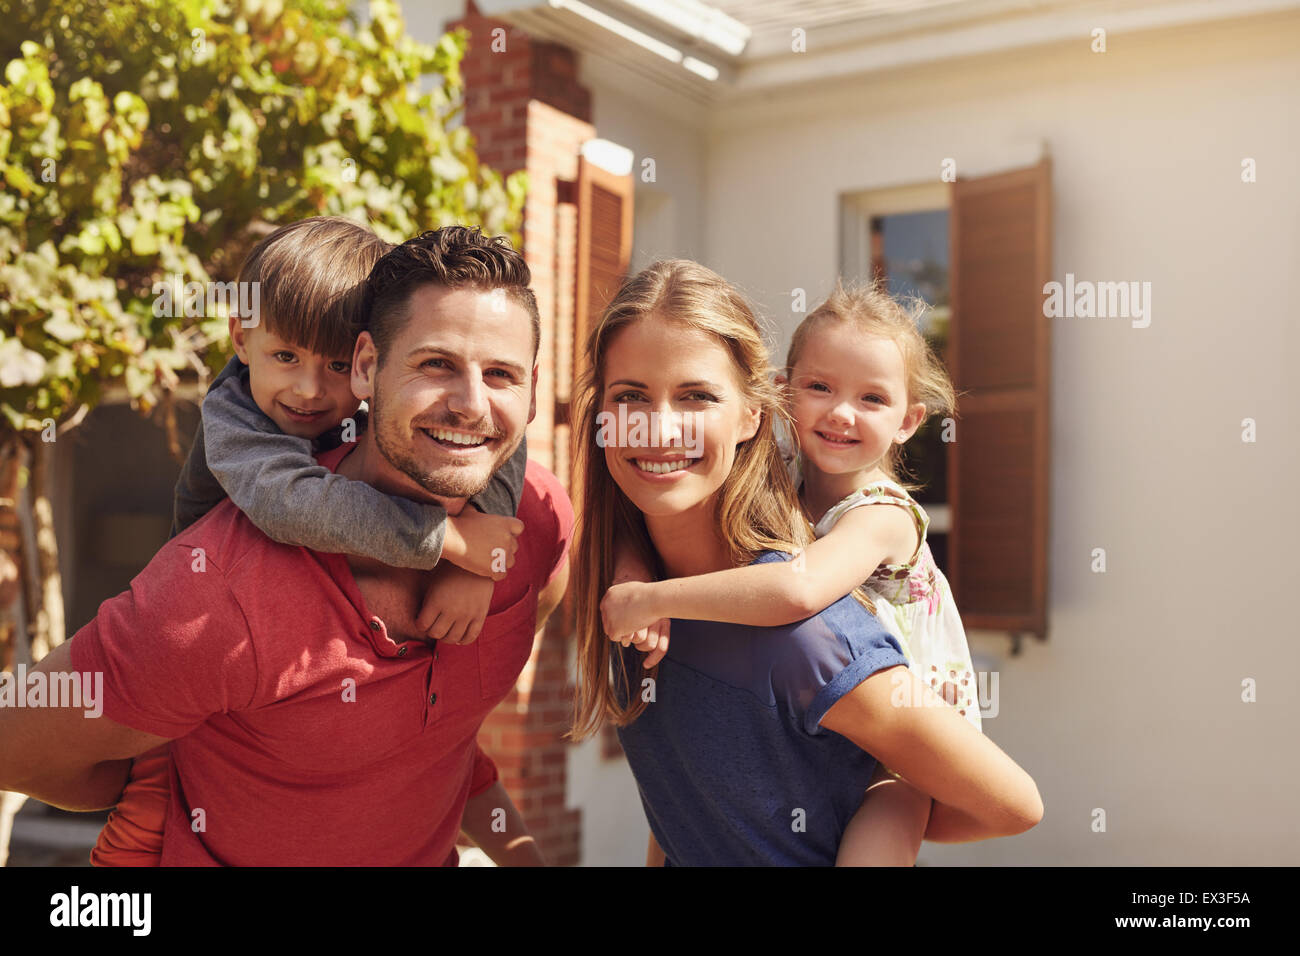 Portrait of a happy couple carrying their children on their backs. Parents giving their children piggyback rides - Stock Image